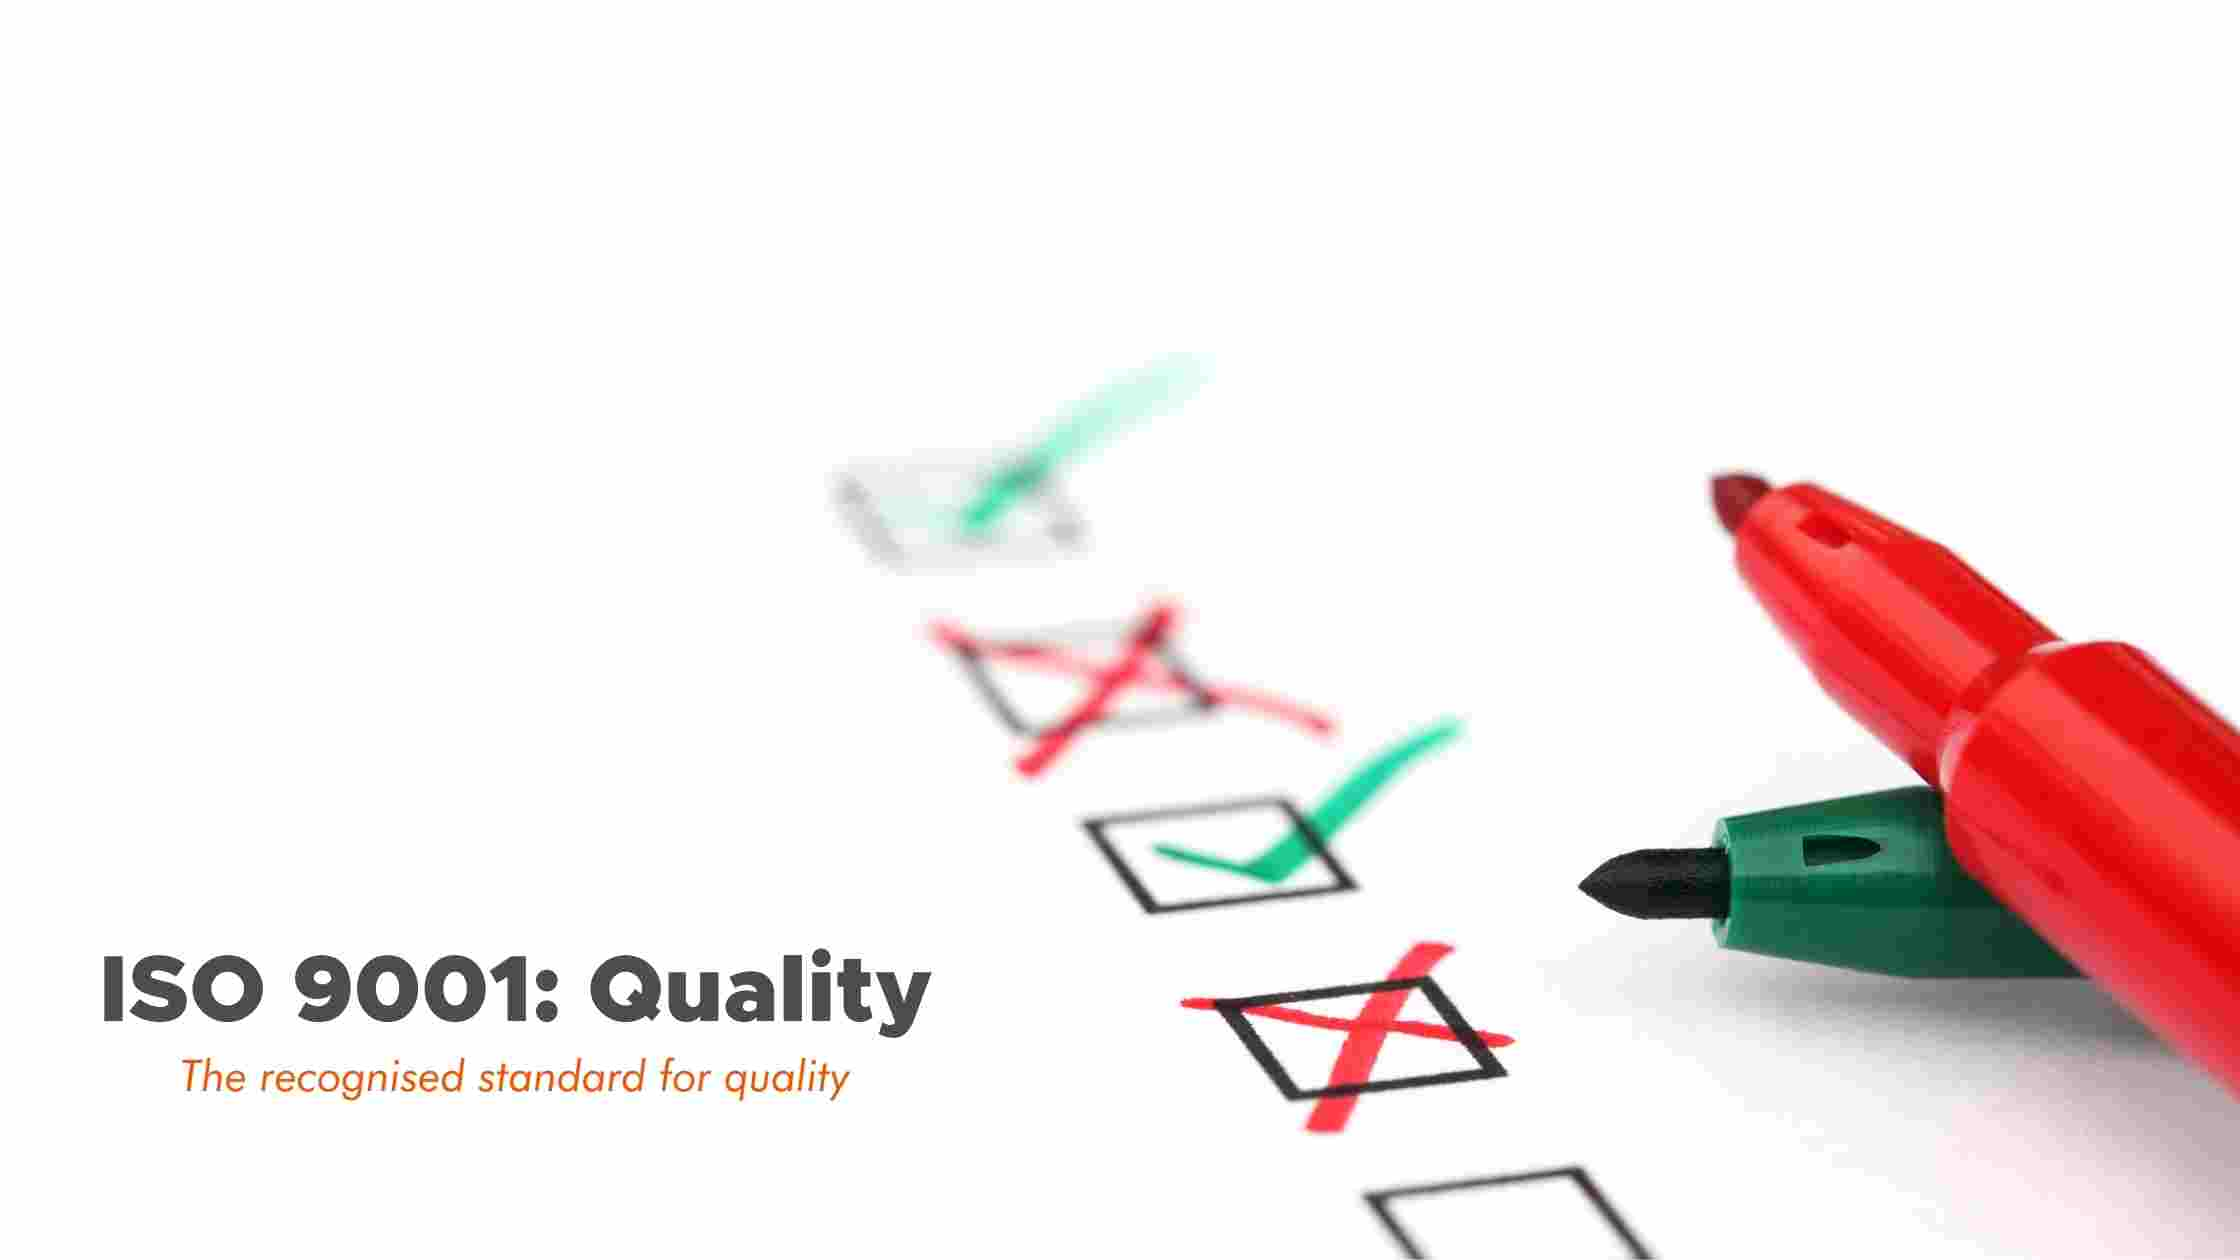 ISO 9001 - QMS QUALITY MANAGEMENT SYSTEM